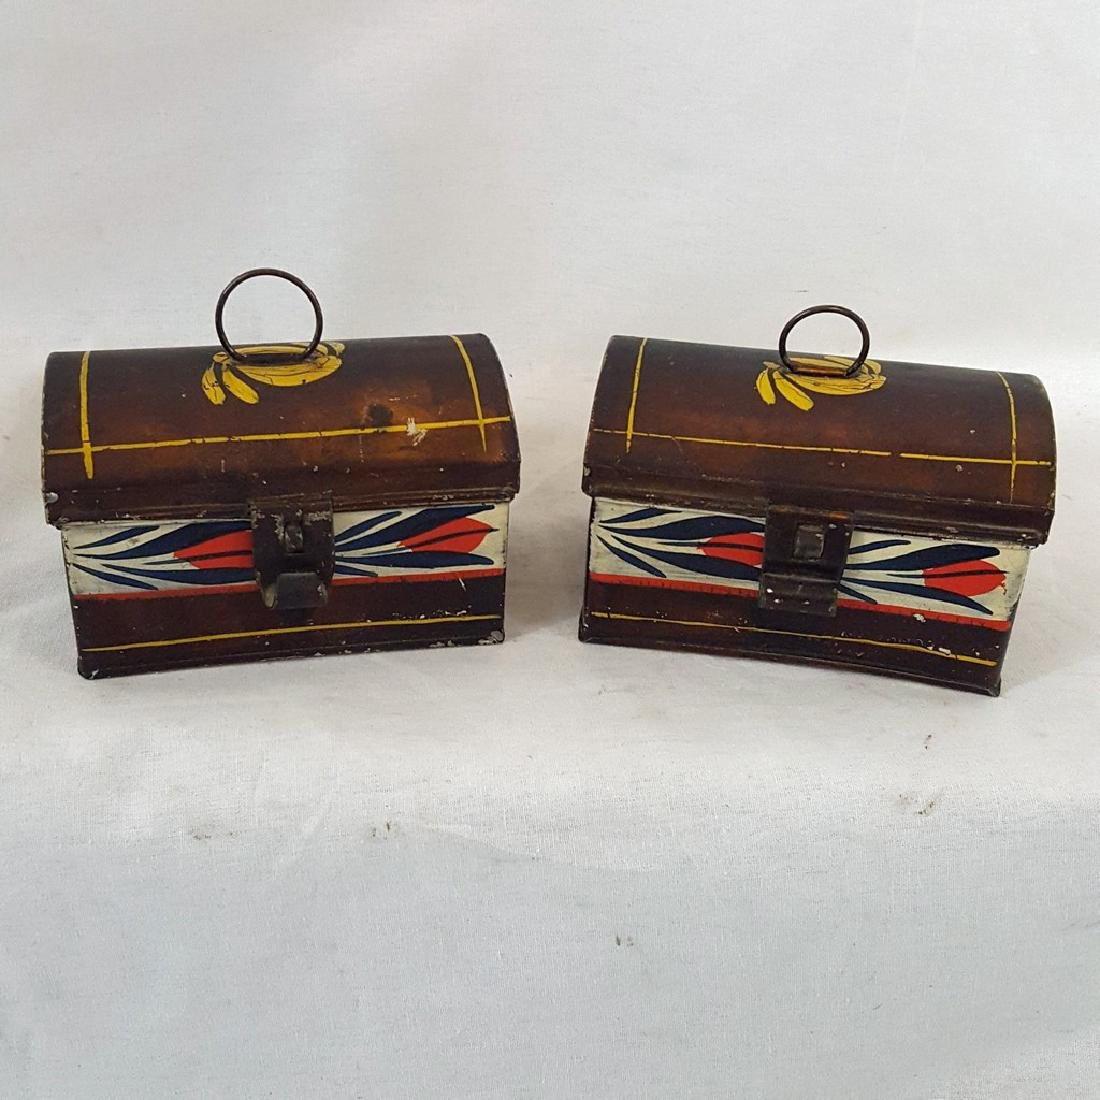 Scarce Pair of Toleware Miniature Document Boxes C 1840